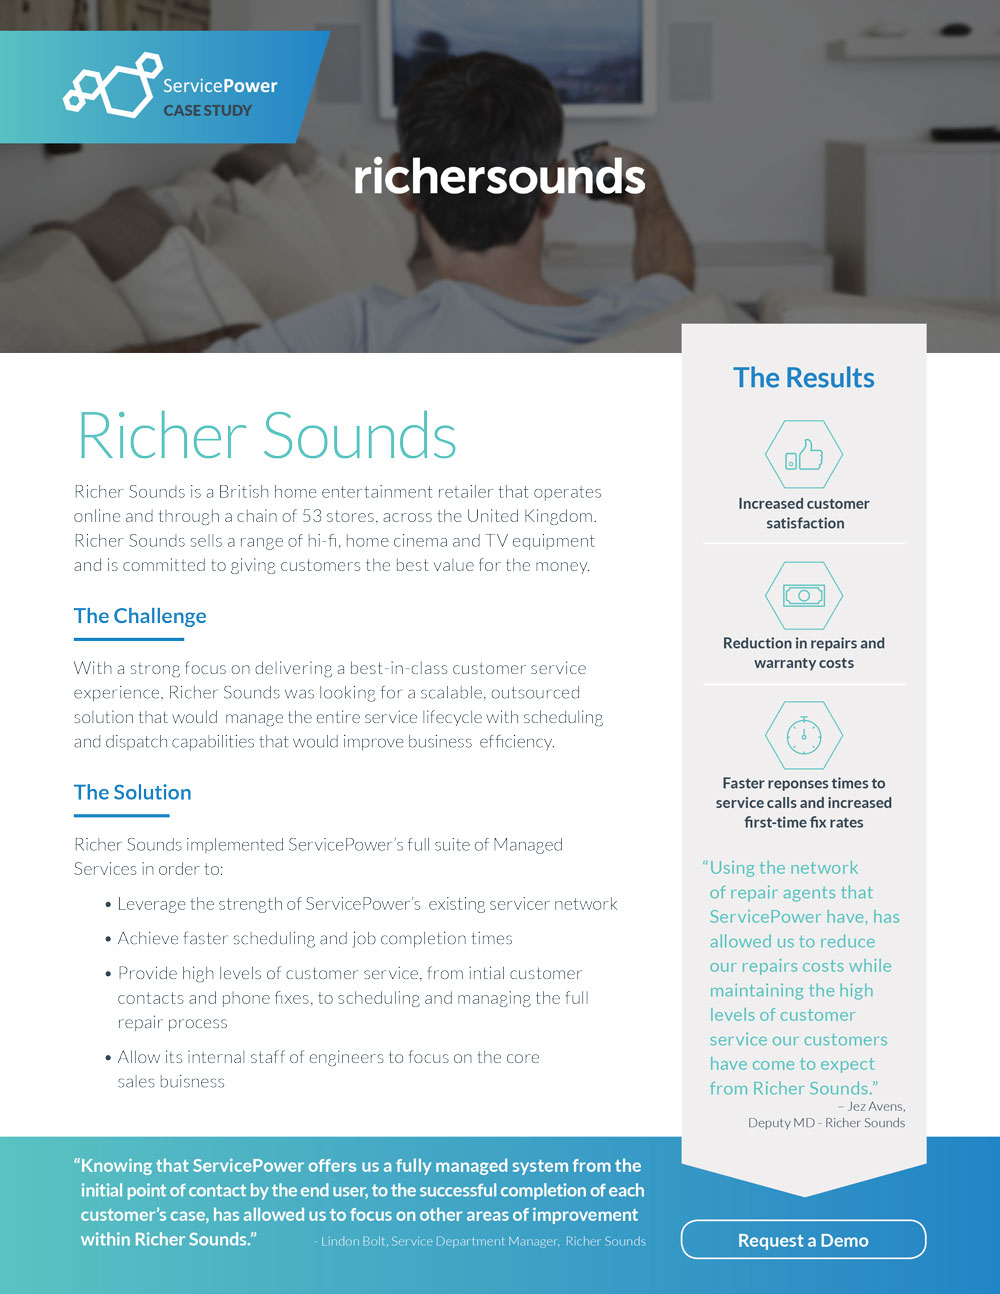 Richer Sounds Reduces Repair Costs